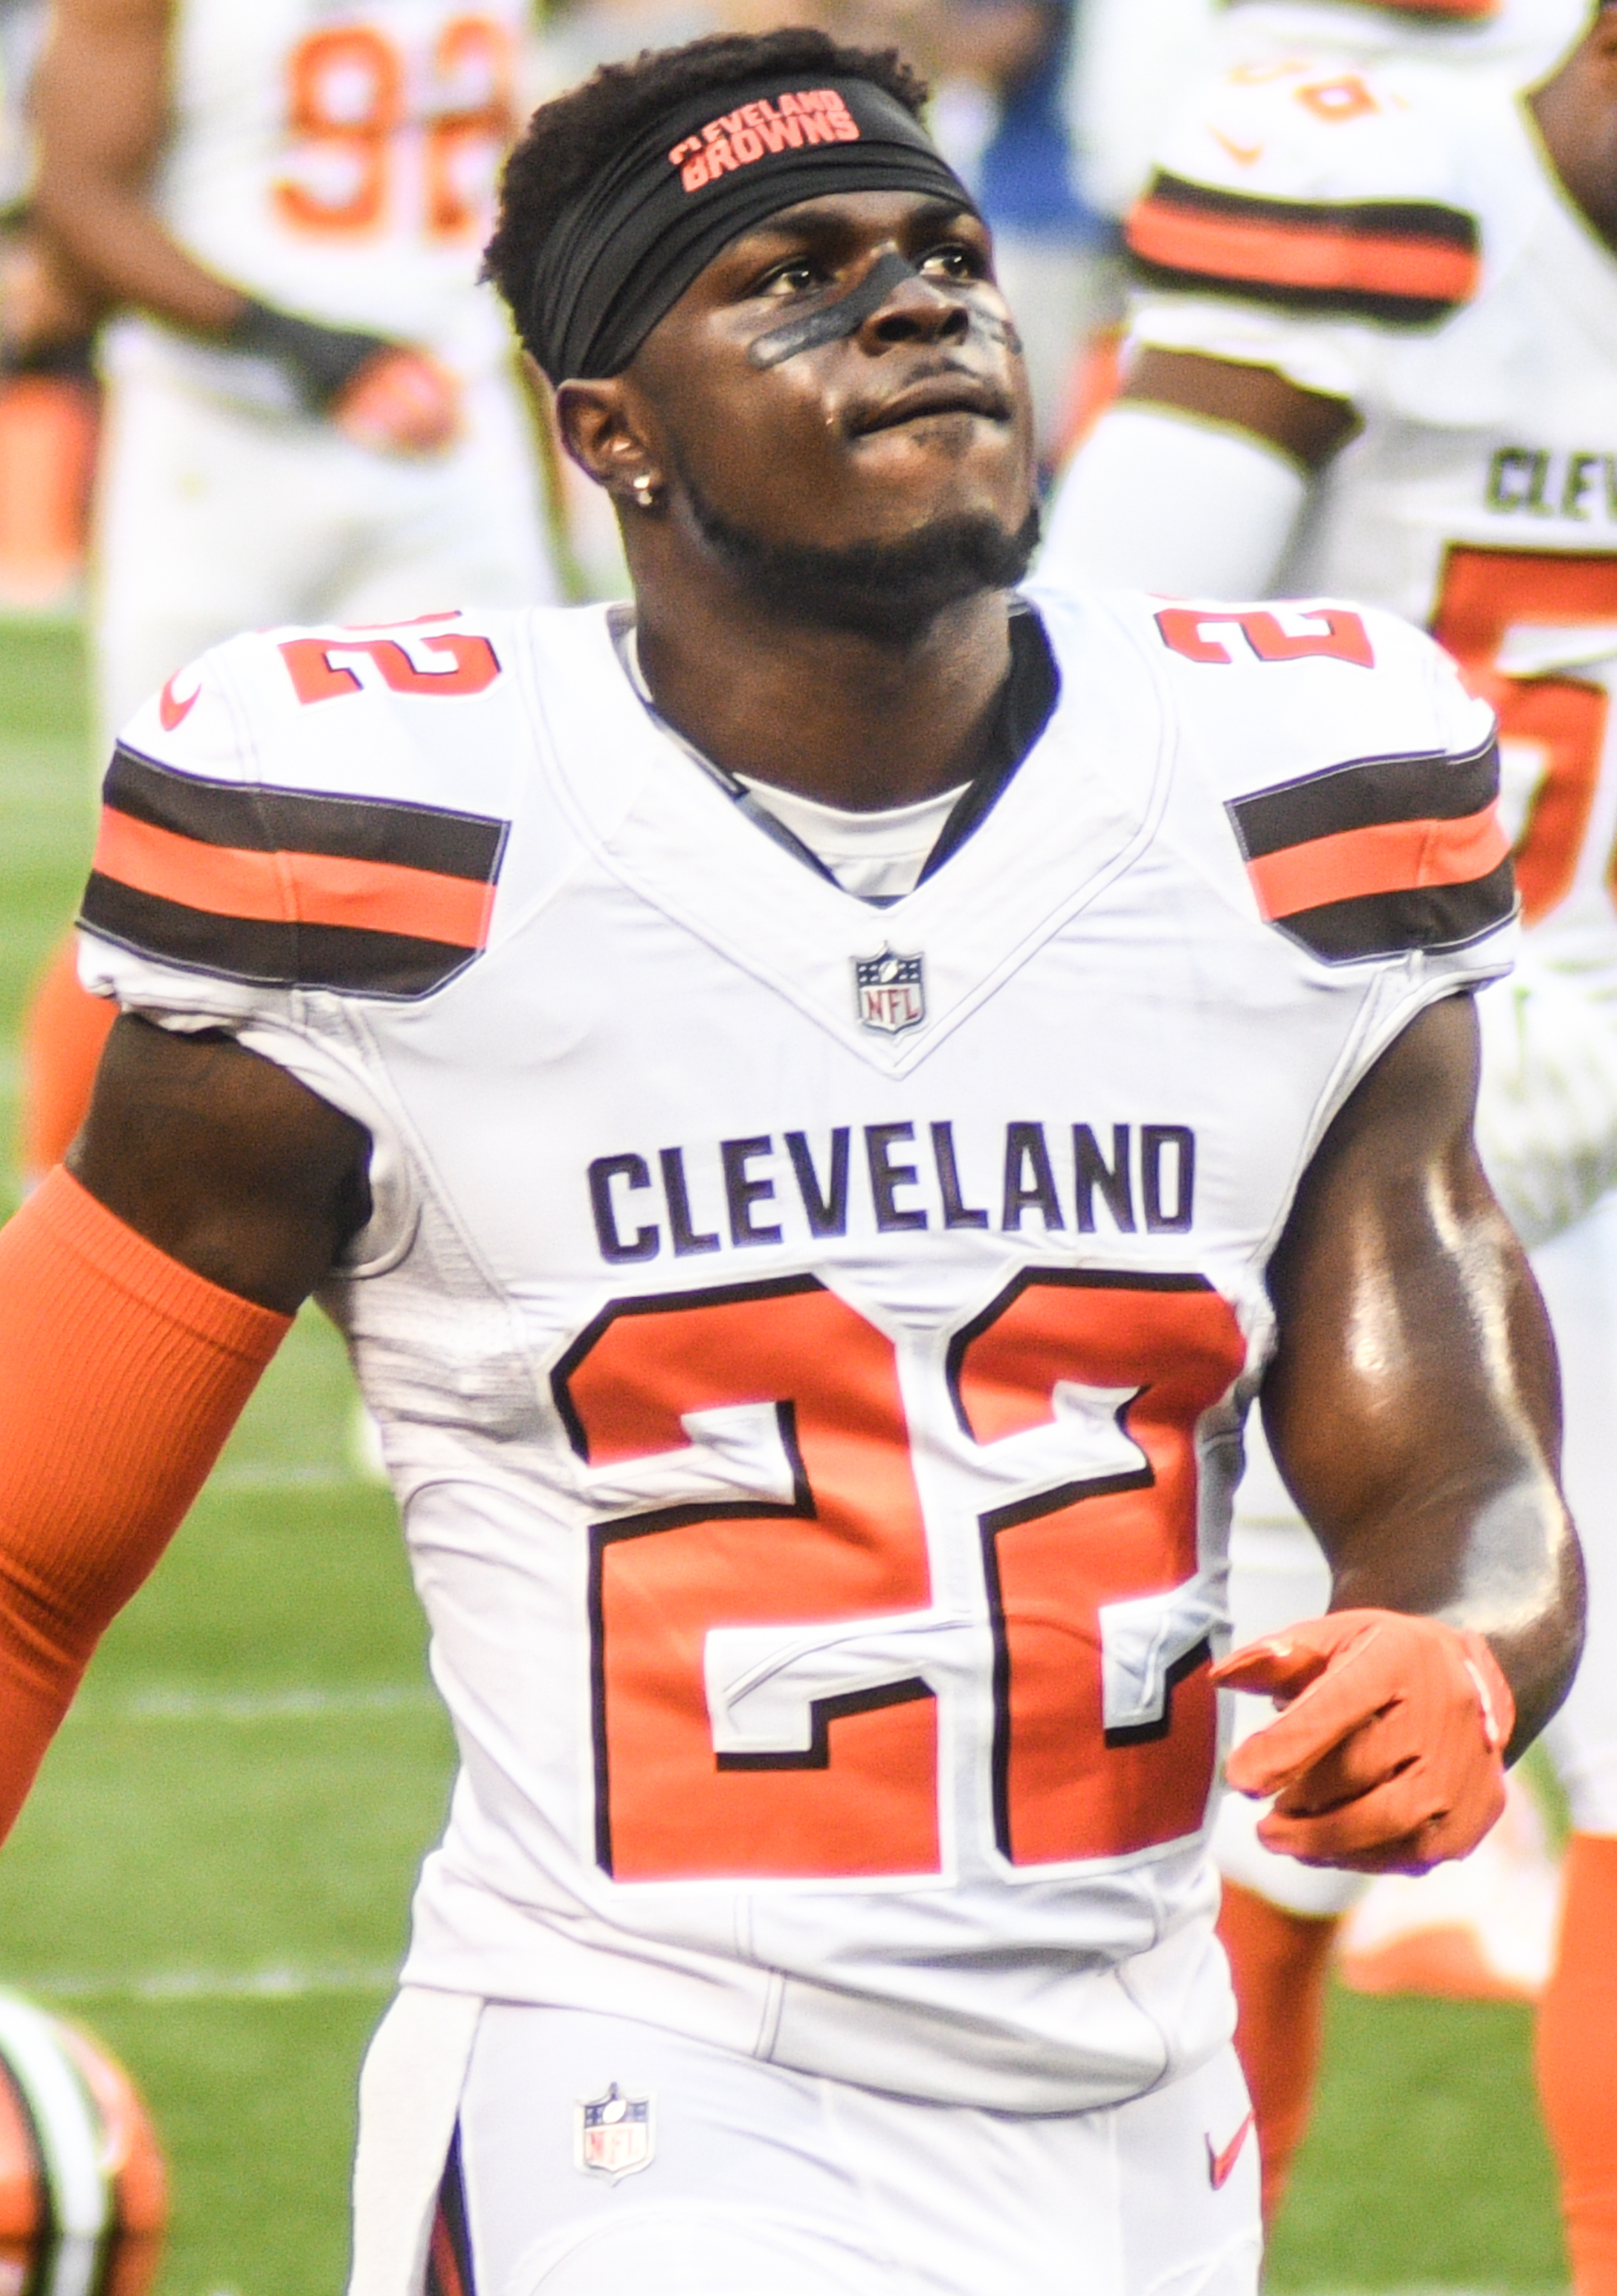 innovative design 5e7b1 68b28 Jabrill Peppers - Wikipedia